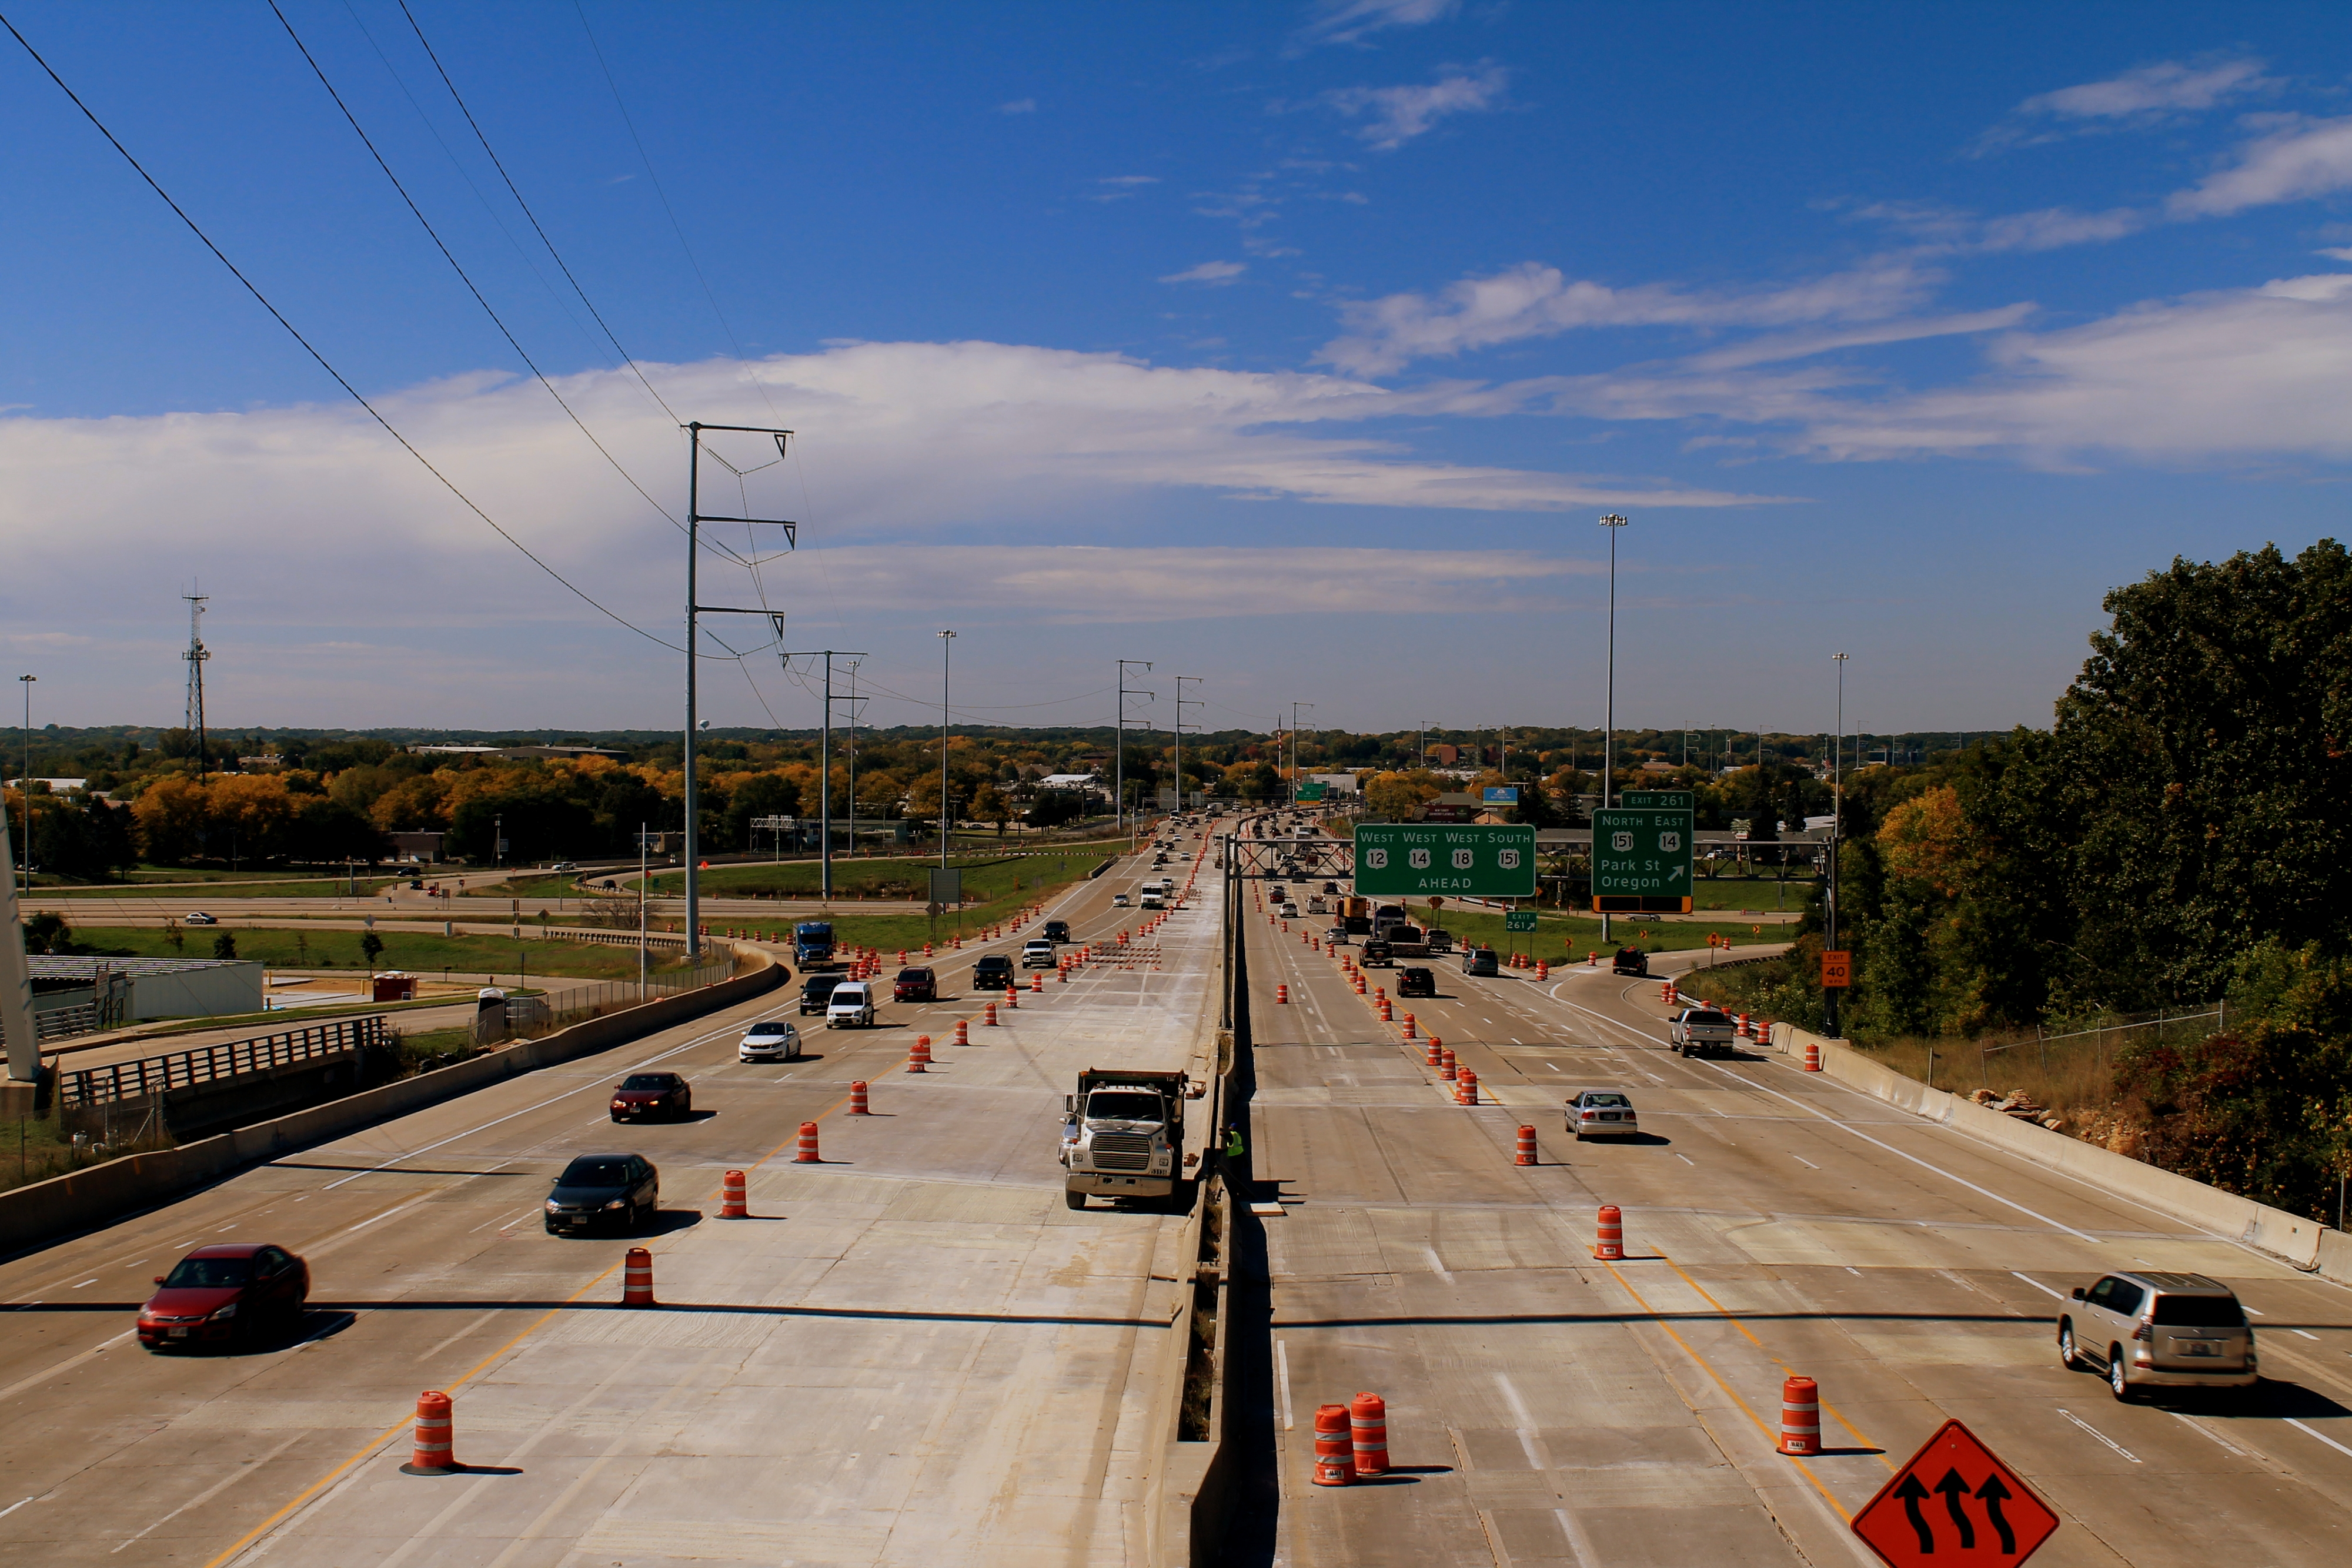 wpr.org - Regional Planning Officials: $47M In Federal Funding Gone From Urban Road Projects